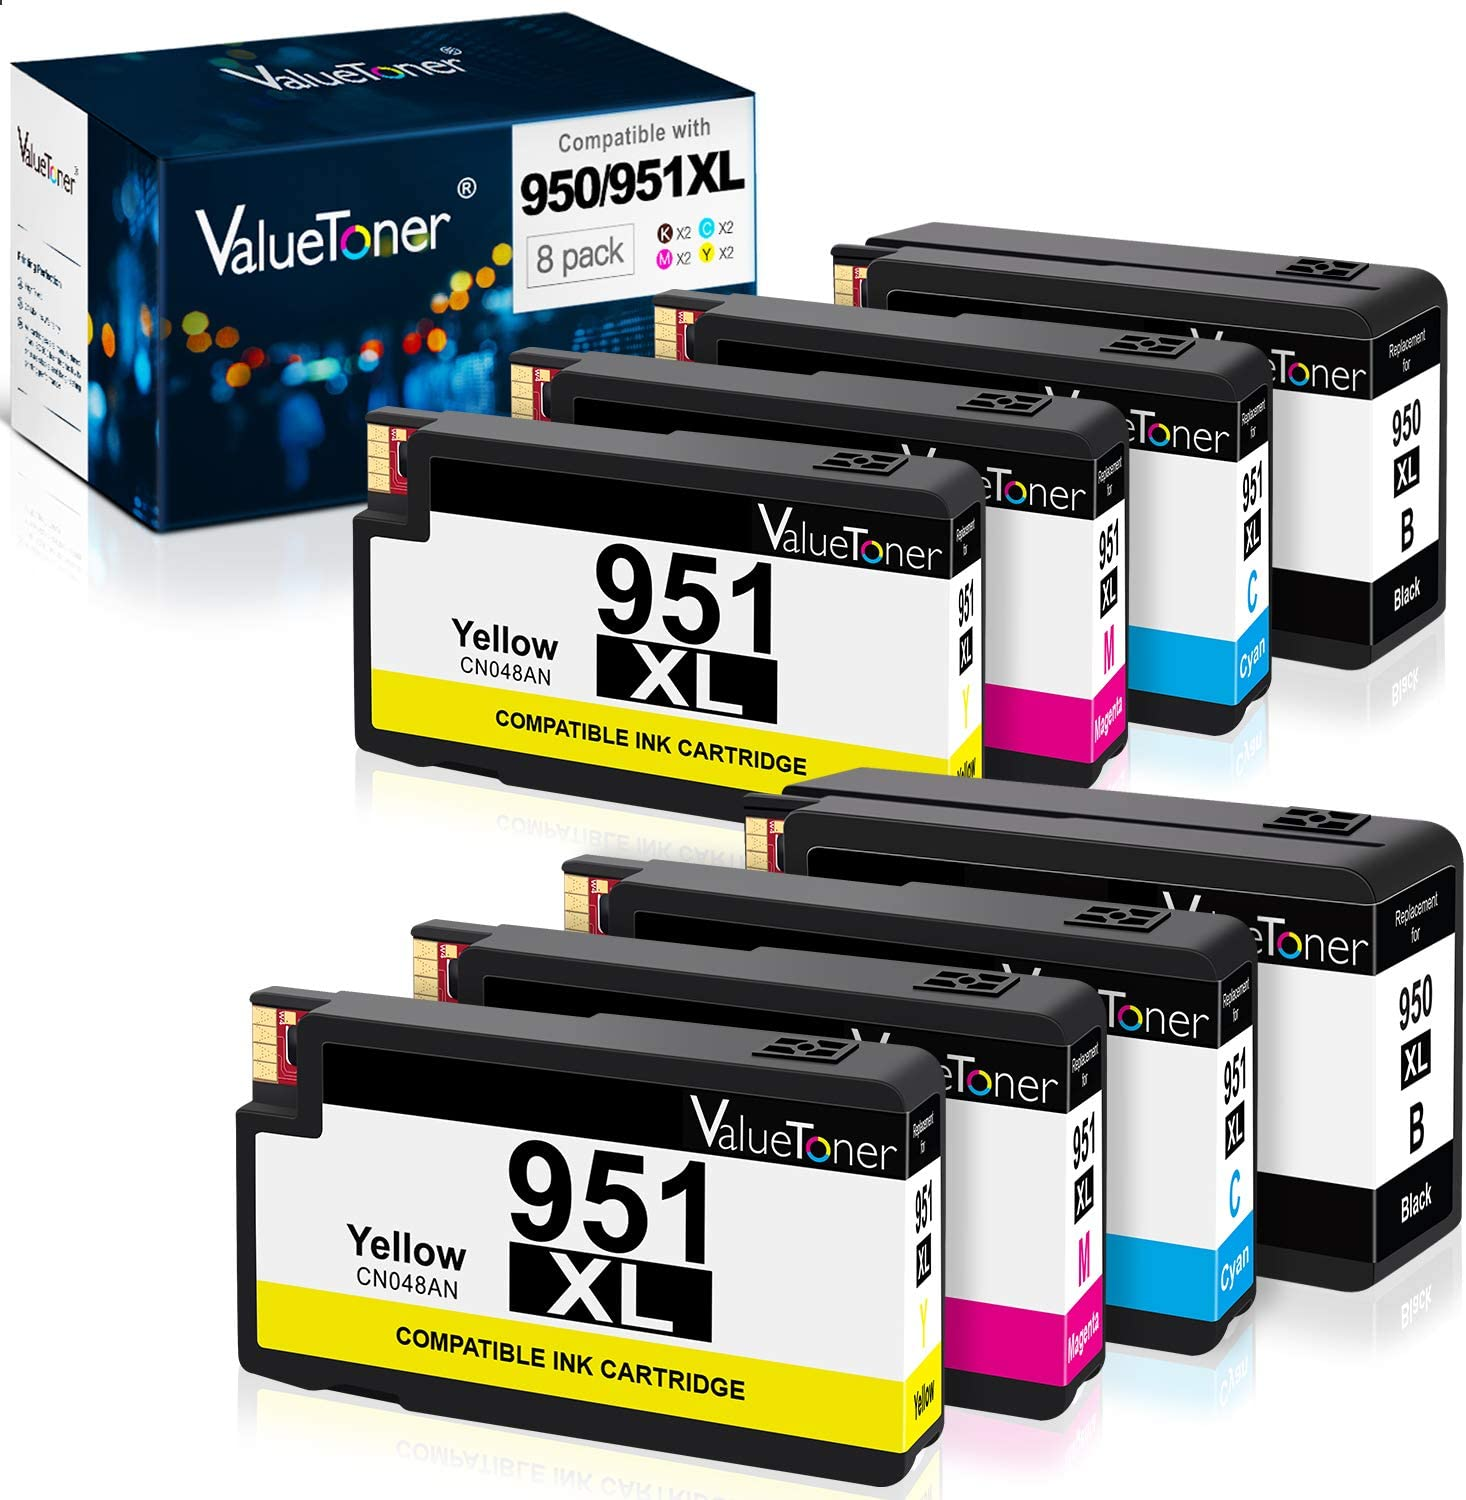 Valuetoner Compatible Ink Cartridge Replacement for HP 950XL 951XL 950 XL 951 XL High Yield for Officejet Pro 8600 8610 8100 8615 8620 8630 8660 251dw 8 Pack (2 Black,2 Cyan,2 Magenta,2 Yellow)